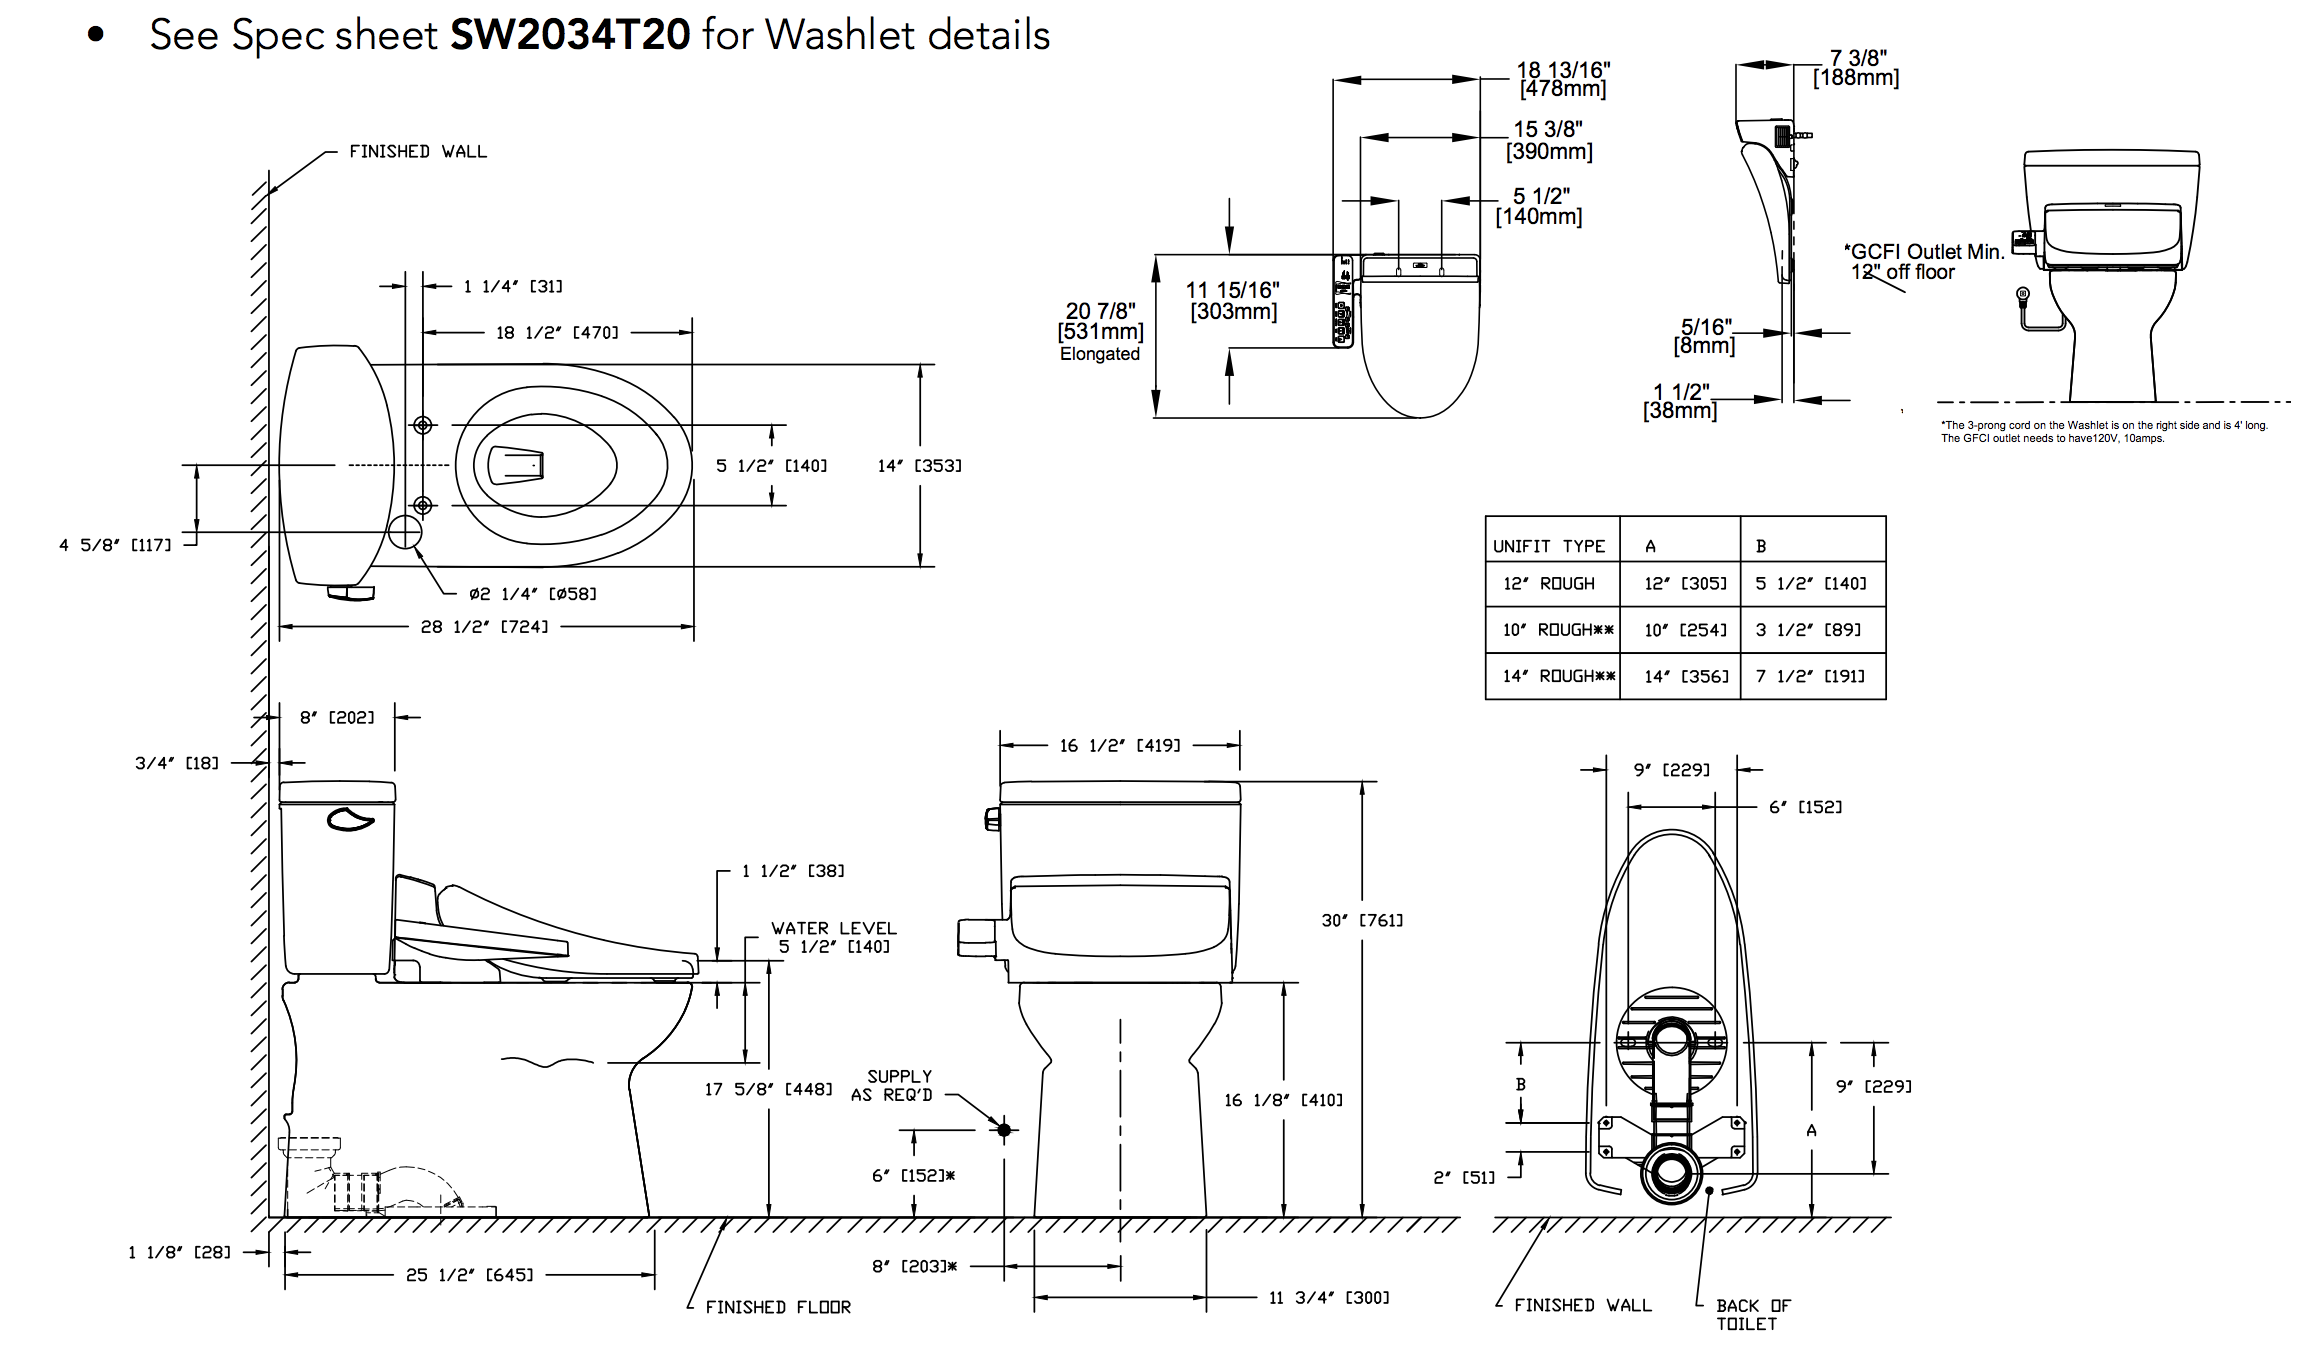 toto-vespin-ii-washlet-c100-two-piece-toilet-and-bidet-system-1.28-gpf-diagram.png